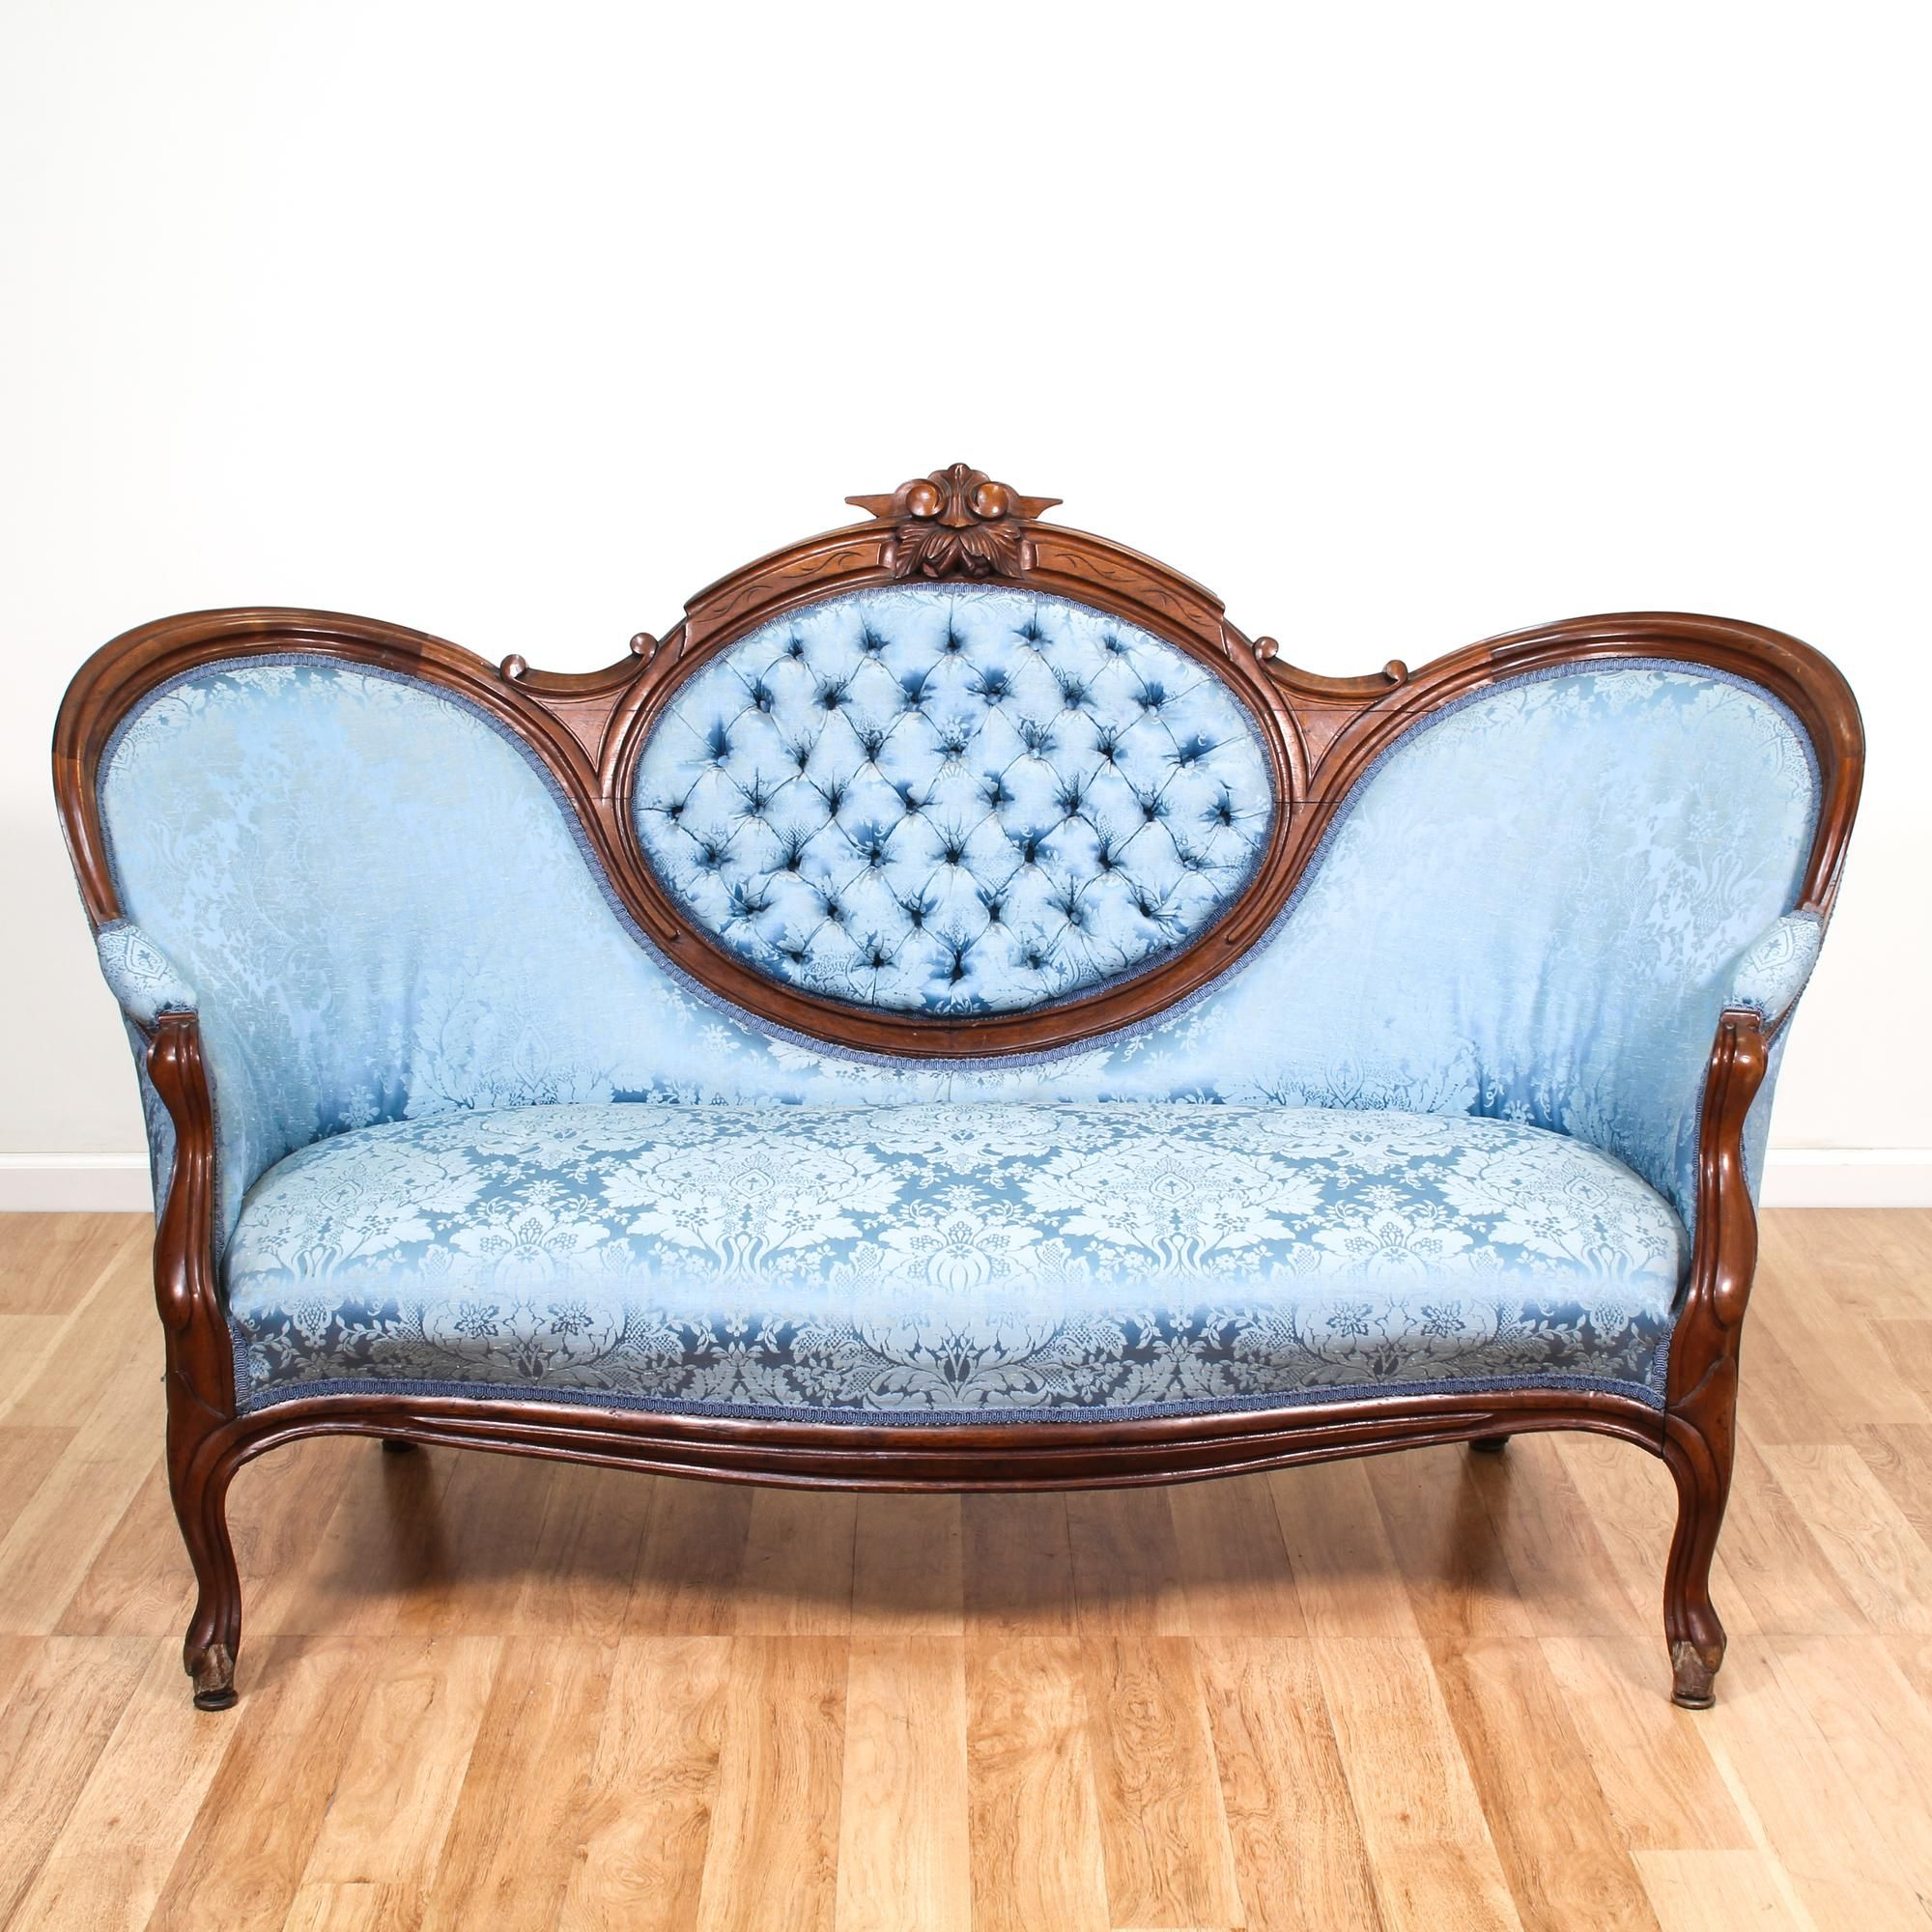 This Victorian Sofa Is Upholstered In A Durable Silk Like Blue